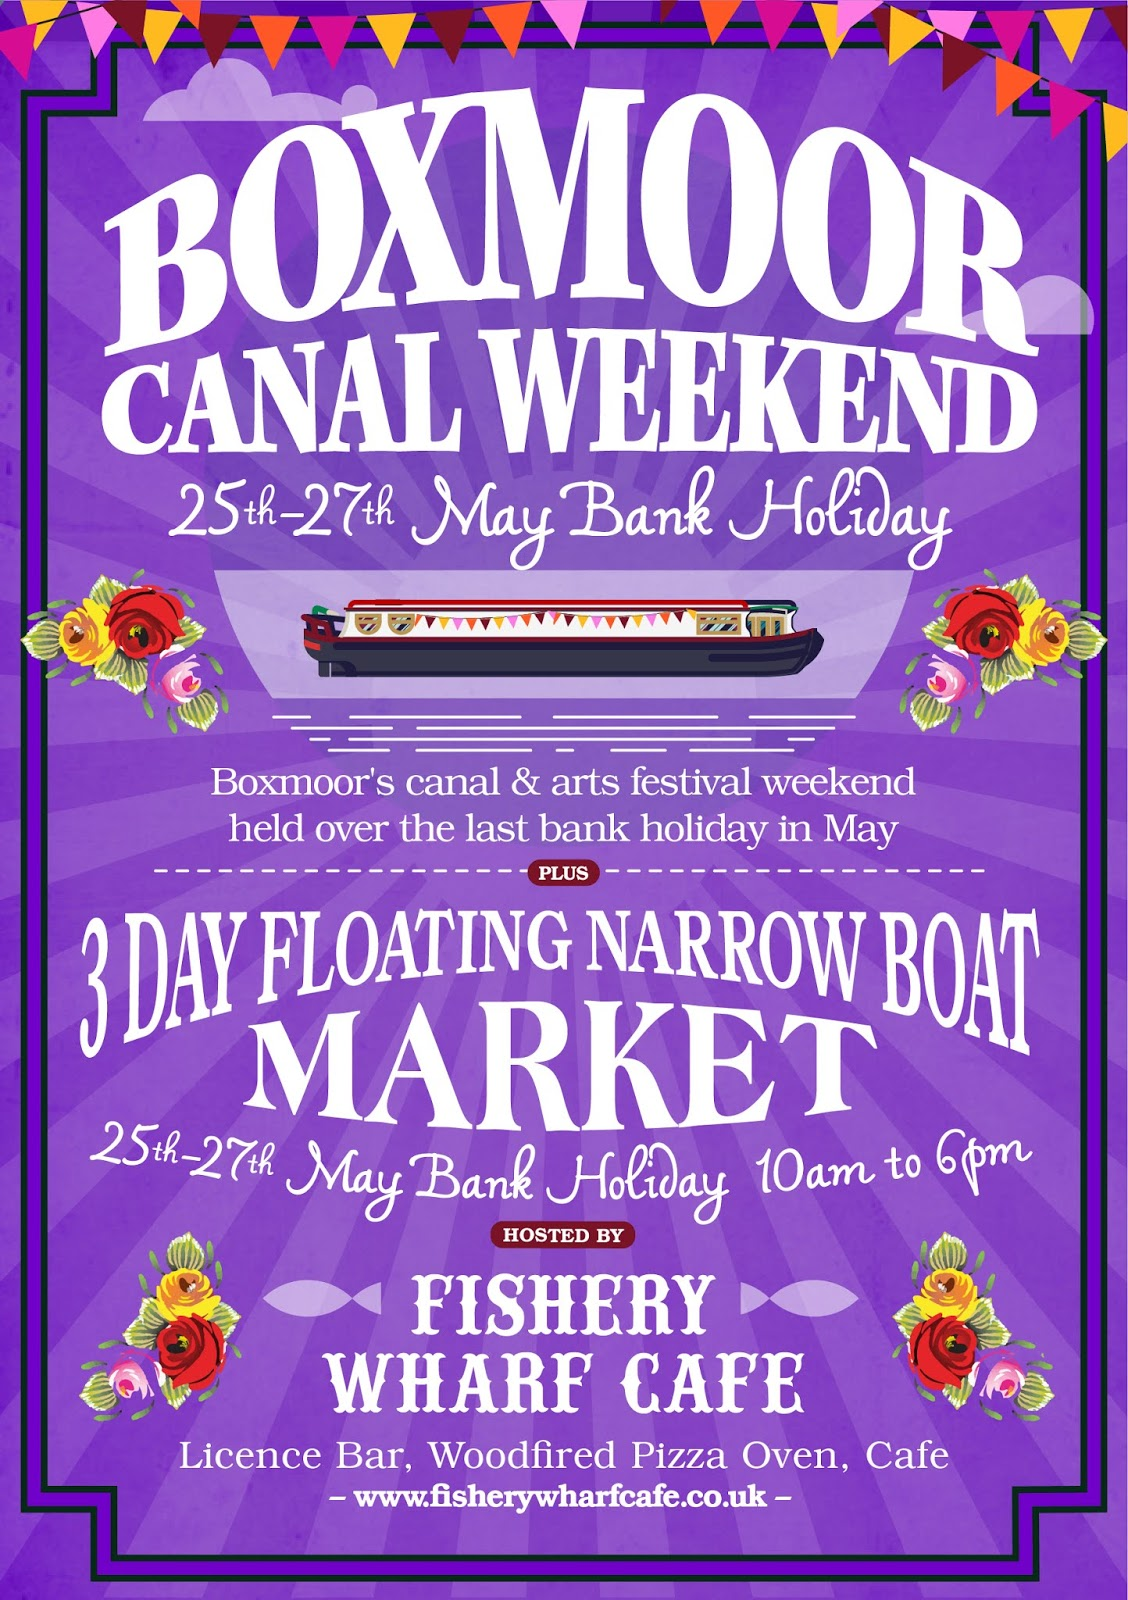 Art Wolfe Floating Market Fishery Wharf Cafe Boxmoor Canal Festival 25th 27th May 2019